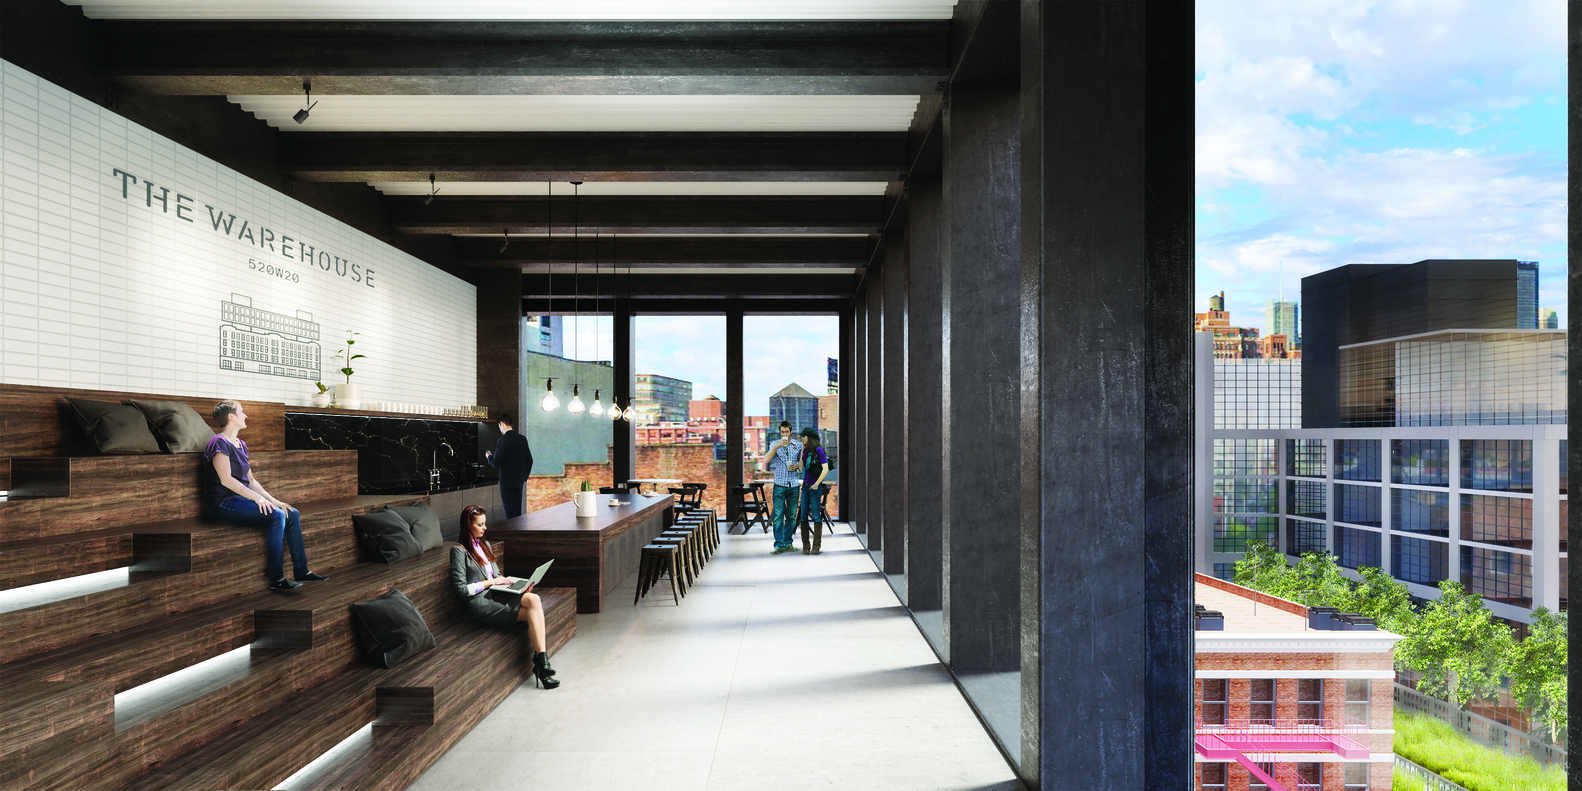 The Warehouse, High Line architecture, Elijah Equities, Morris Adjmi, 520 West 20th Street